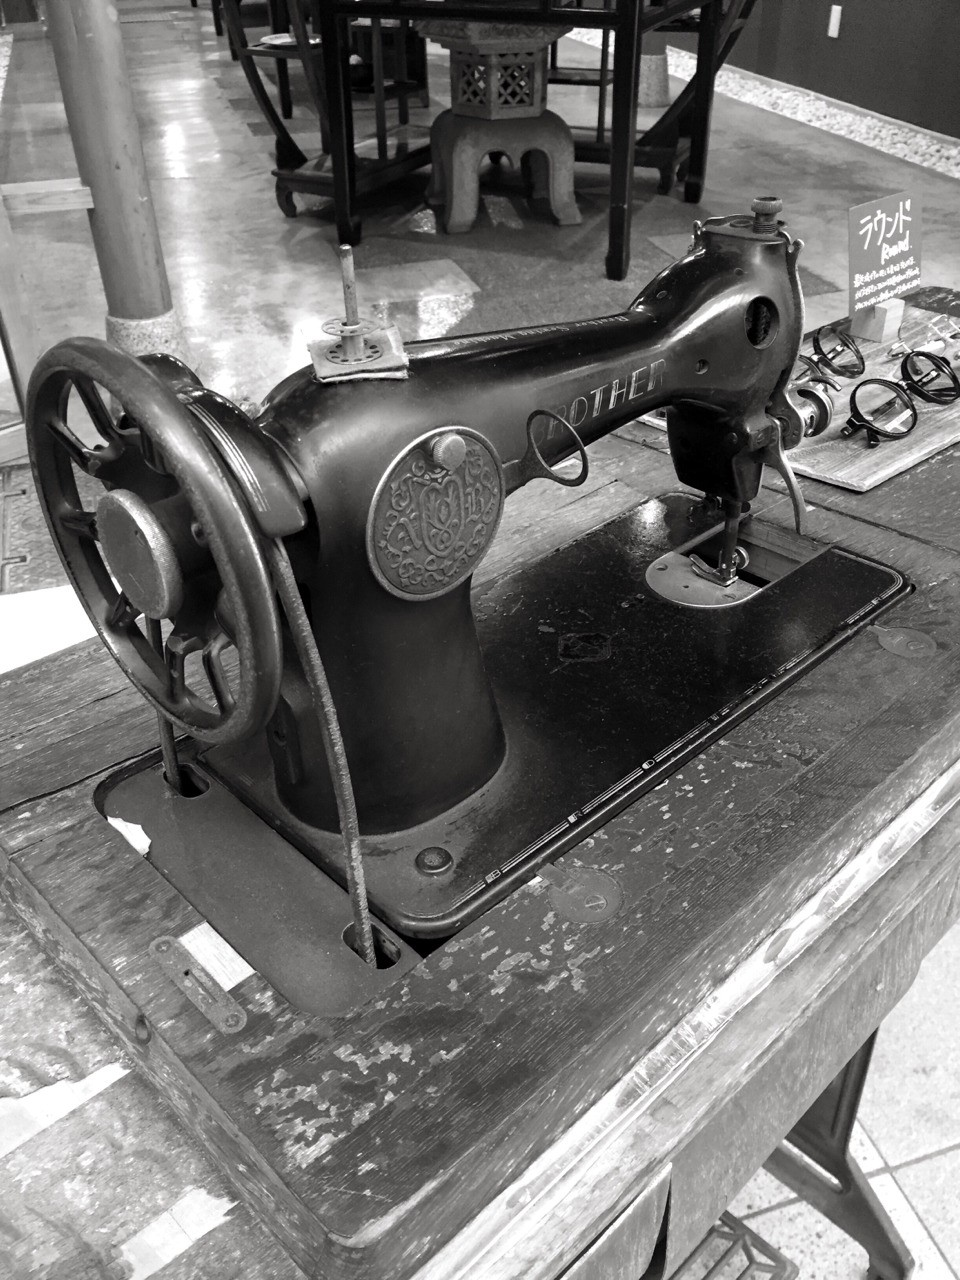 My mom used to make dresses for me and my sister on one of these. It's still at home. Glad we kept it. iPhone 6 App: Lenka